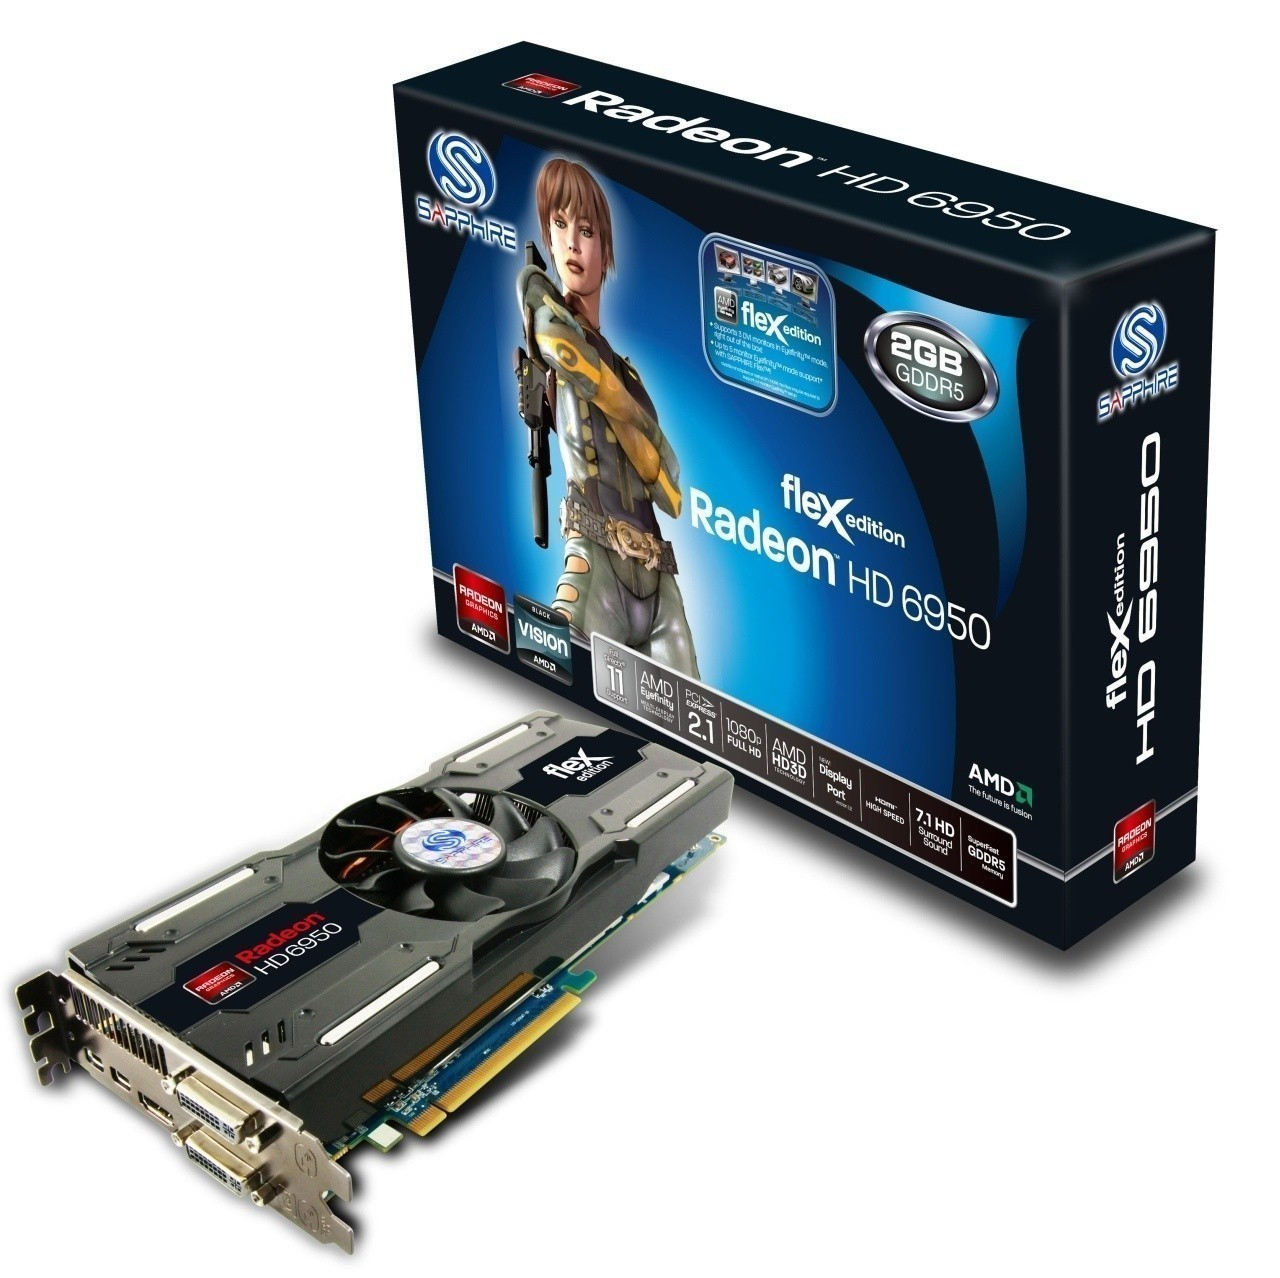 sapphire_hd_6950_flex_simplifies_eyefinity_for_gamers